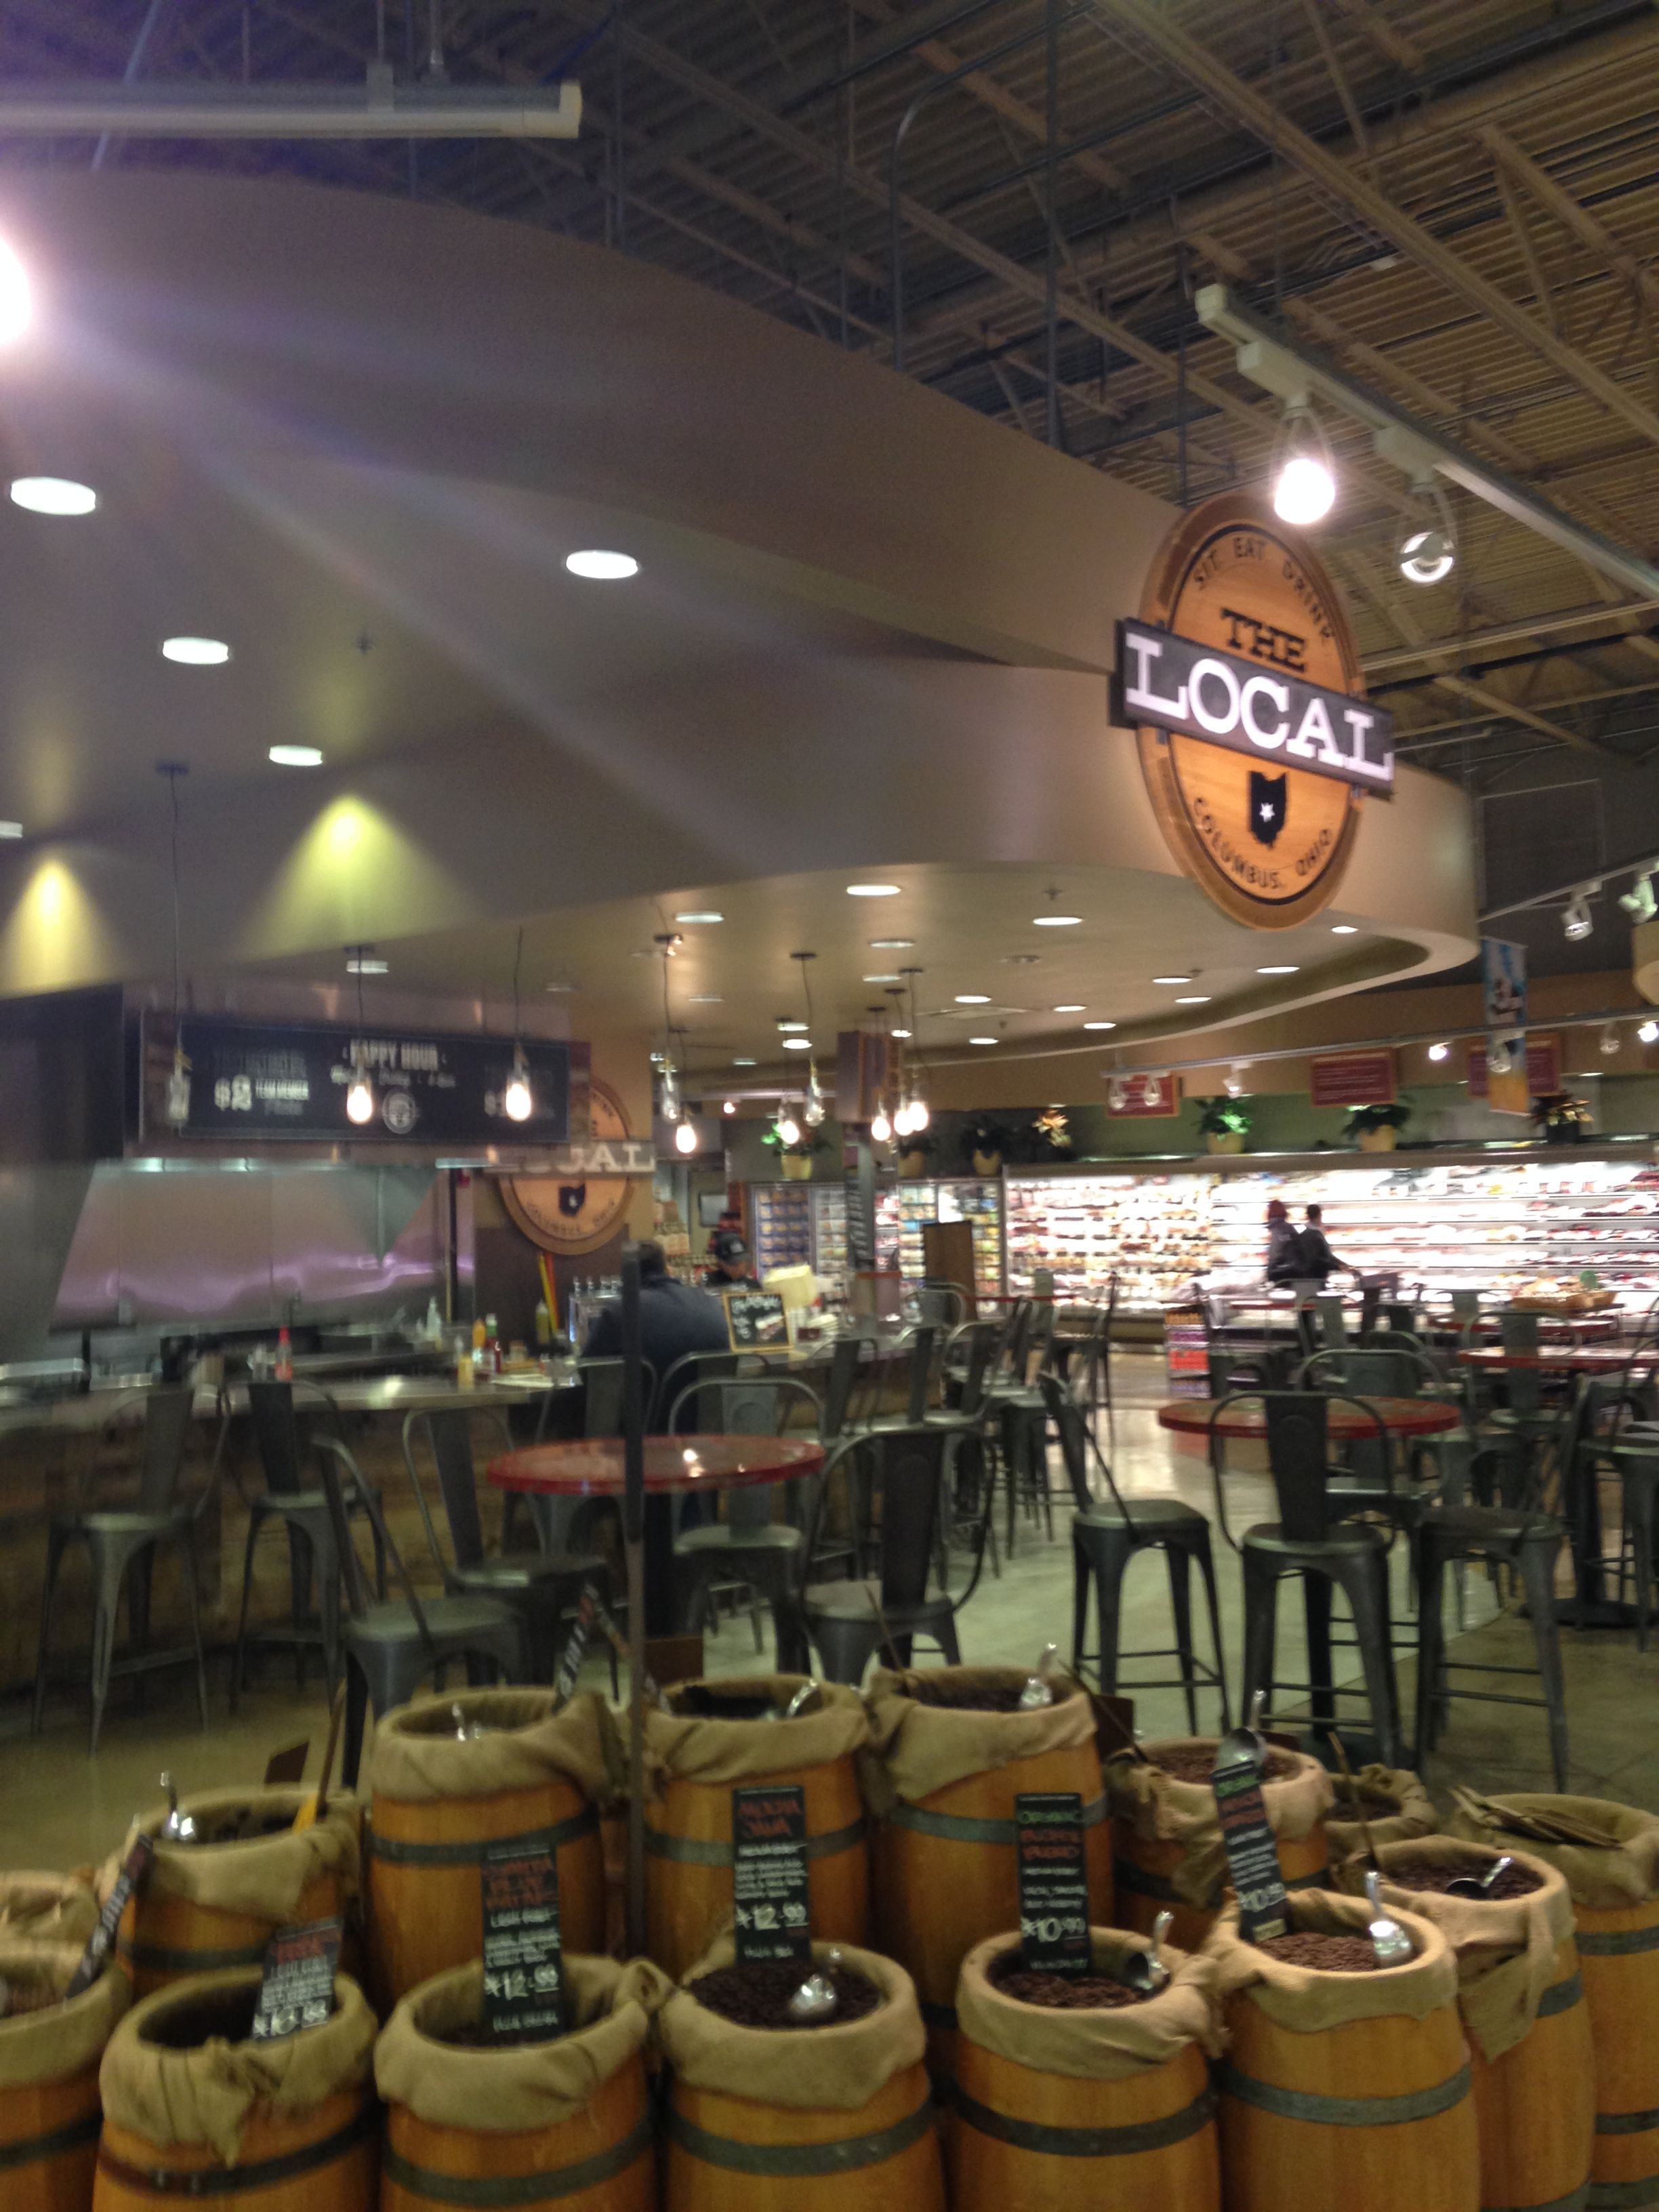 Whole Foods Market Dublin Ohio